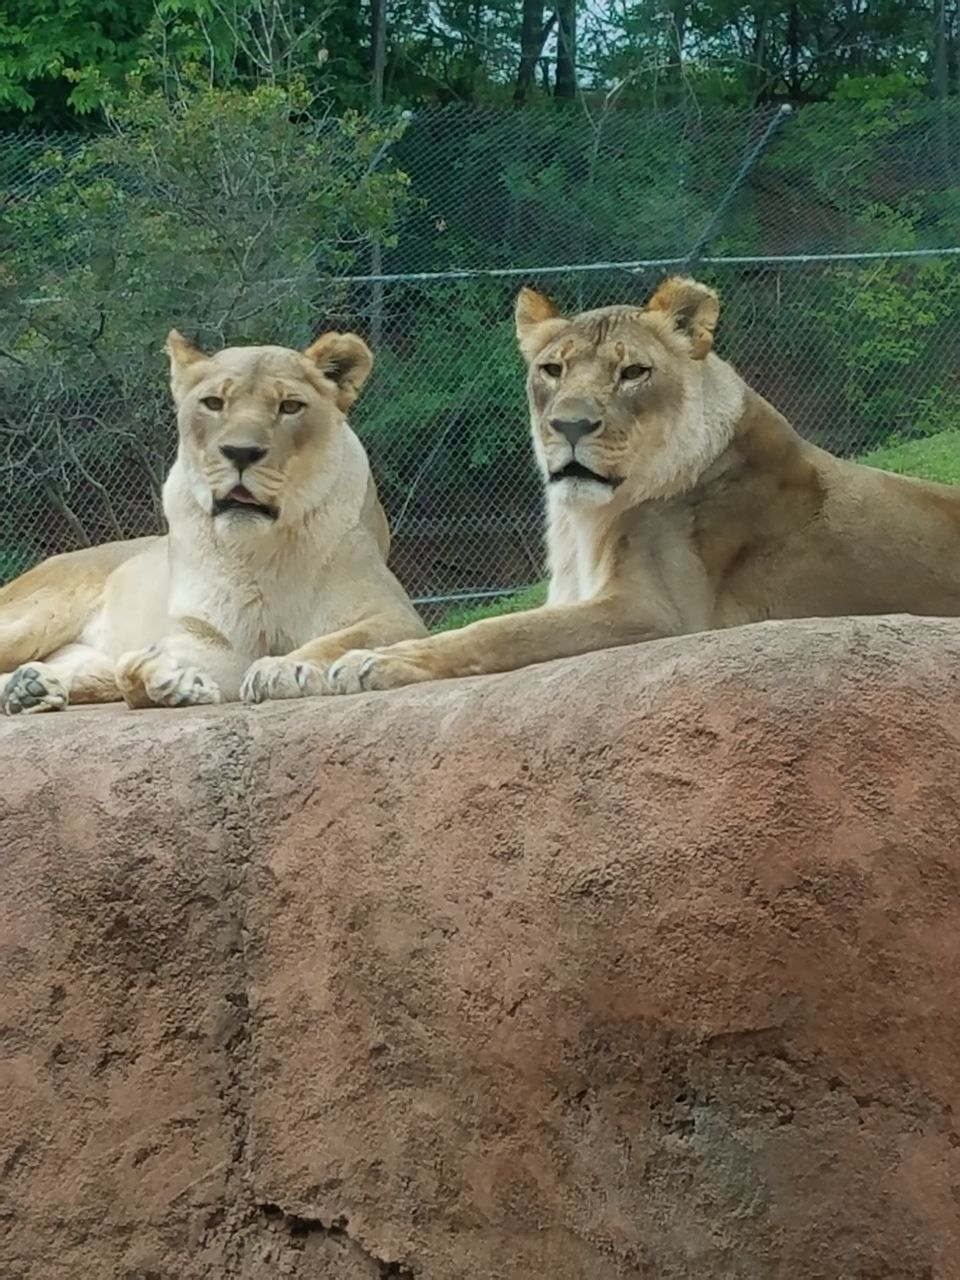 animals in the wild, animal themes, lioness, two animals, wildlife, day, relaxation, mammal, no people, outdoors